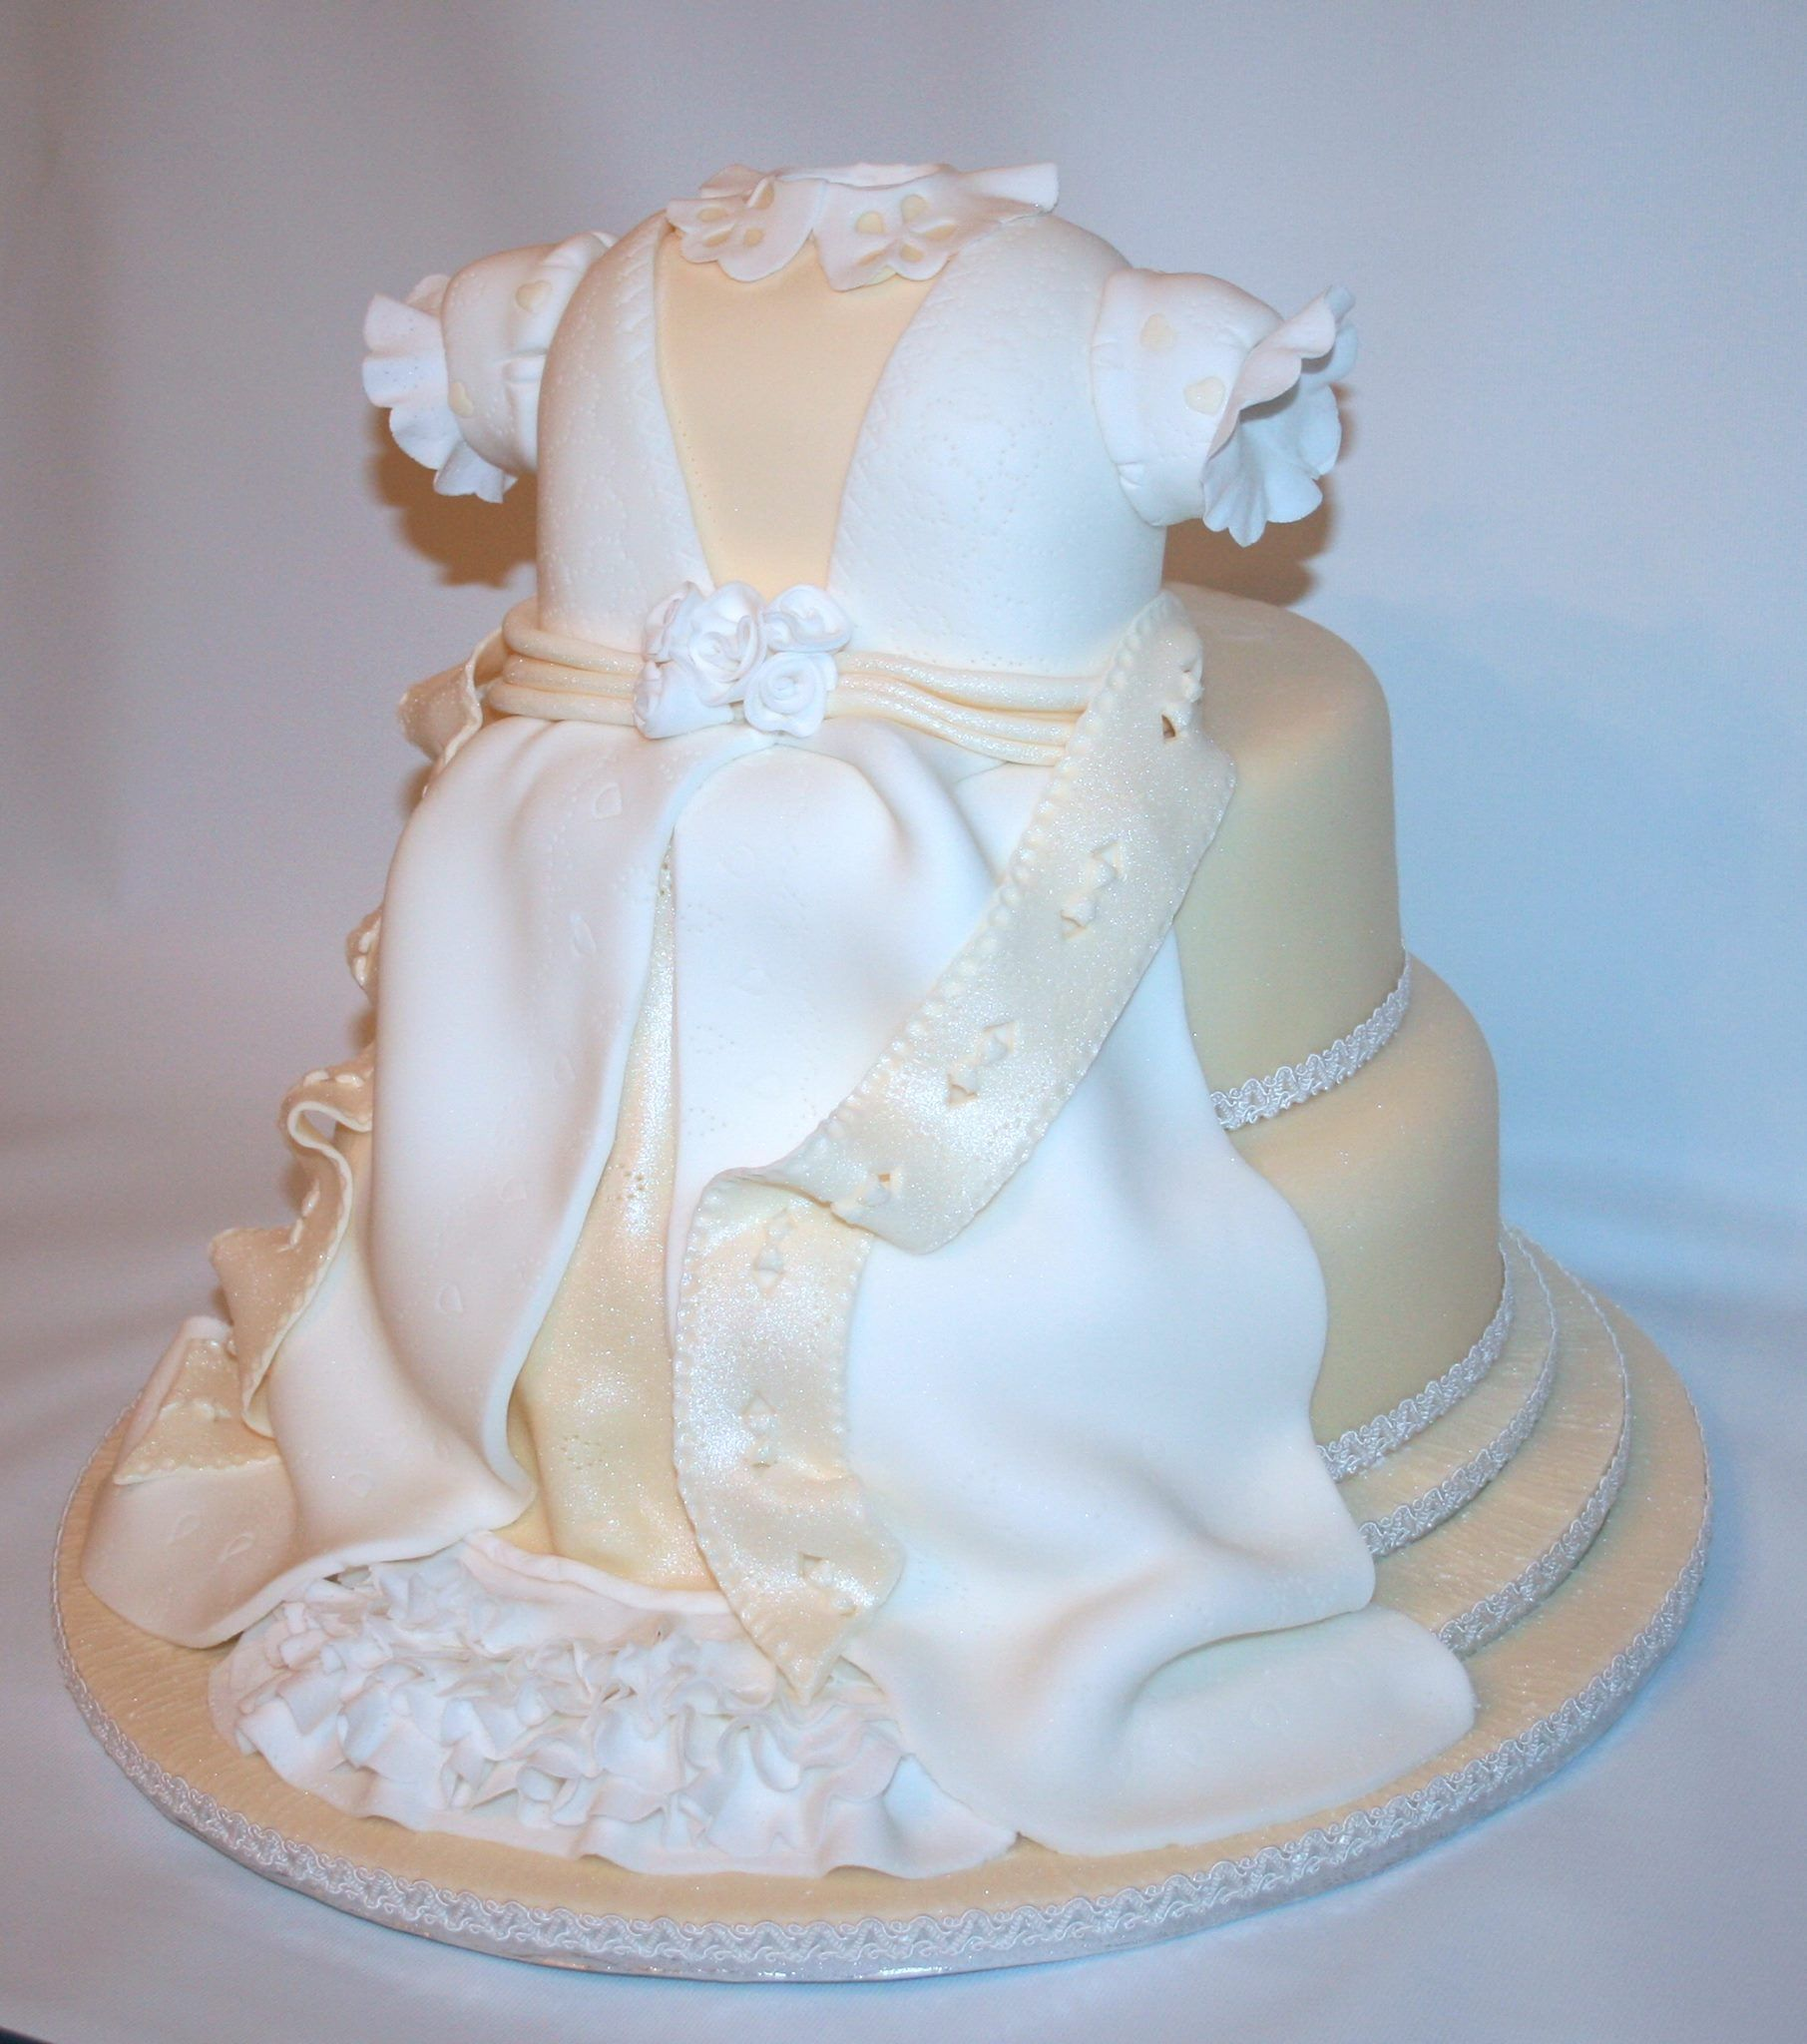 Just wow on this one from katy sue designs cake decorating pattern